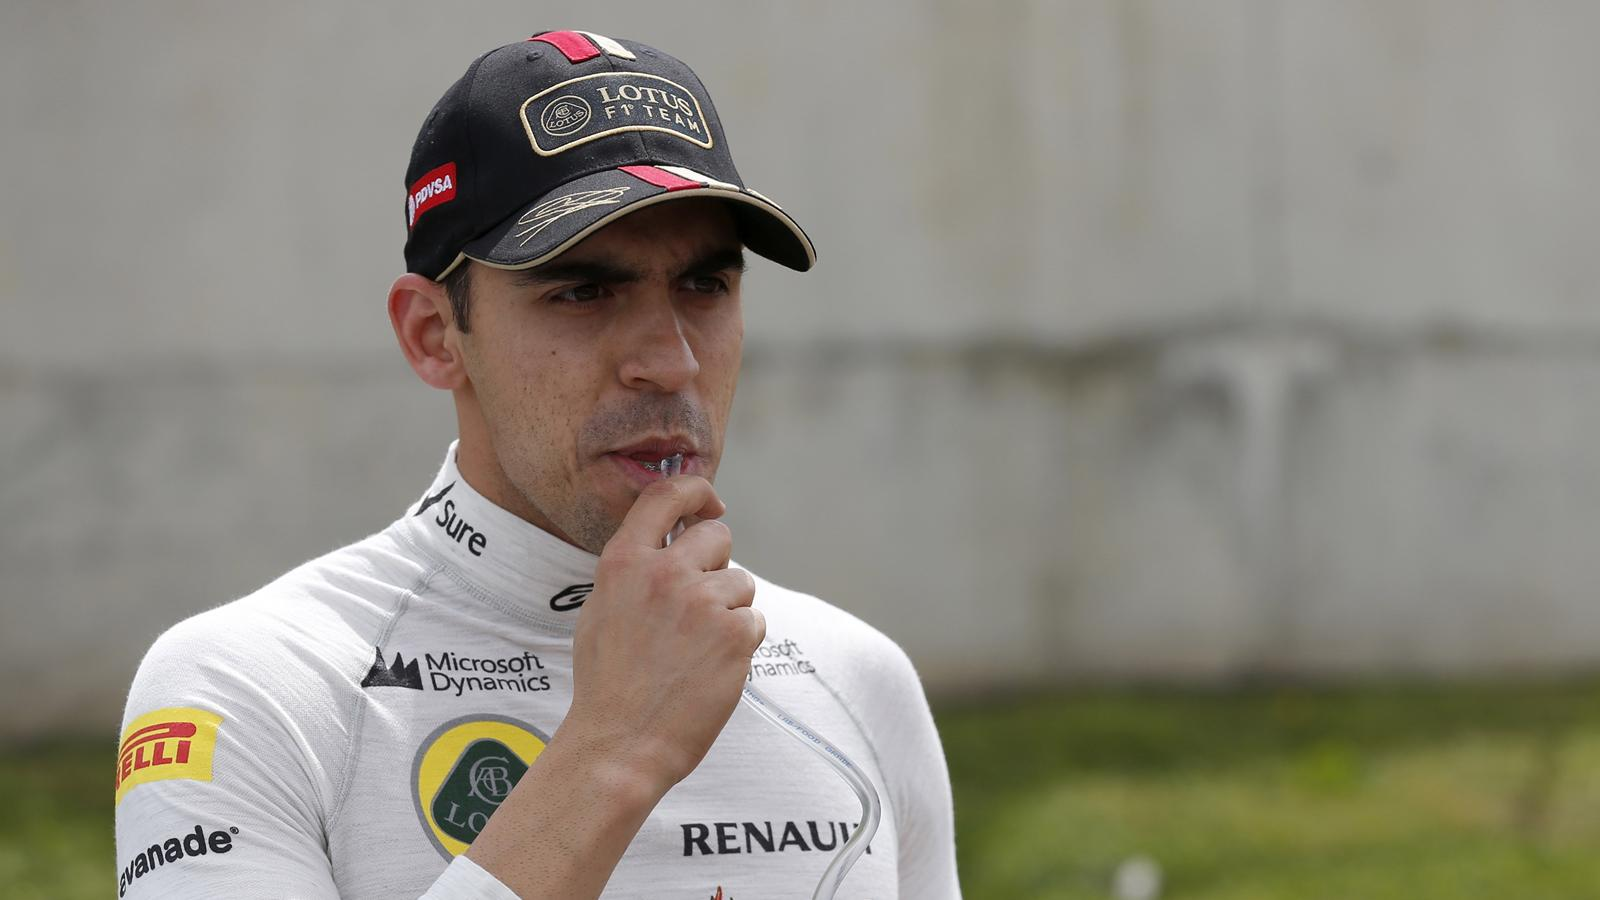 Pastor Maldonado (Lotus) - GP of Great Britain 2014